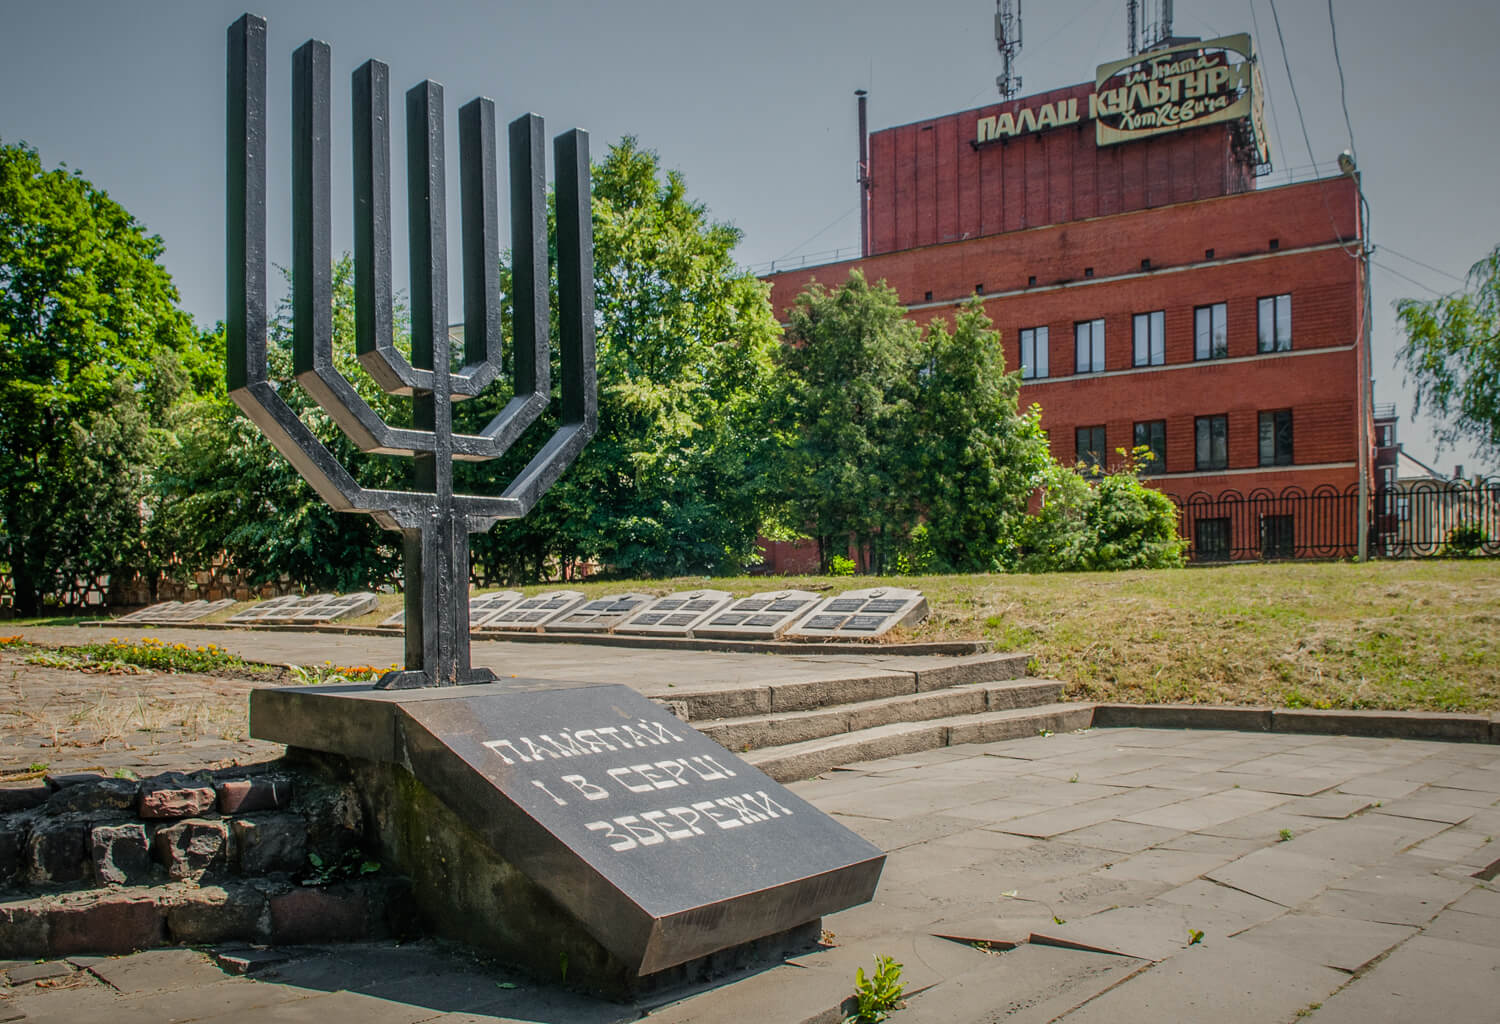 Prosp. Chornovola, former pl. Misionerów. Today, the Memorial to the Victims of Lviv Ghetto is located (near the former ghetto entrance), for some time in 19th century, the city slaughterhouse was located here/Photo courtesy of Yurko Morykvas, 2016